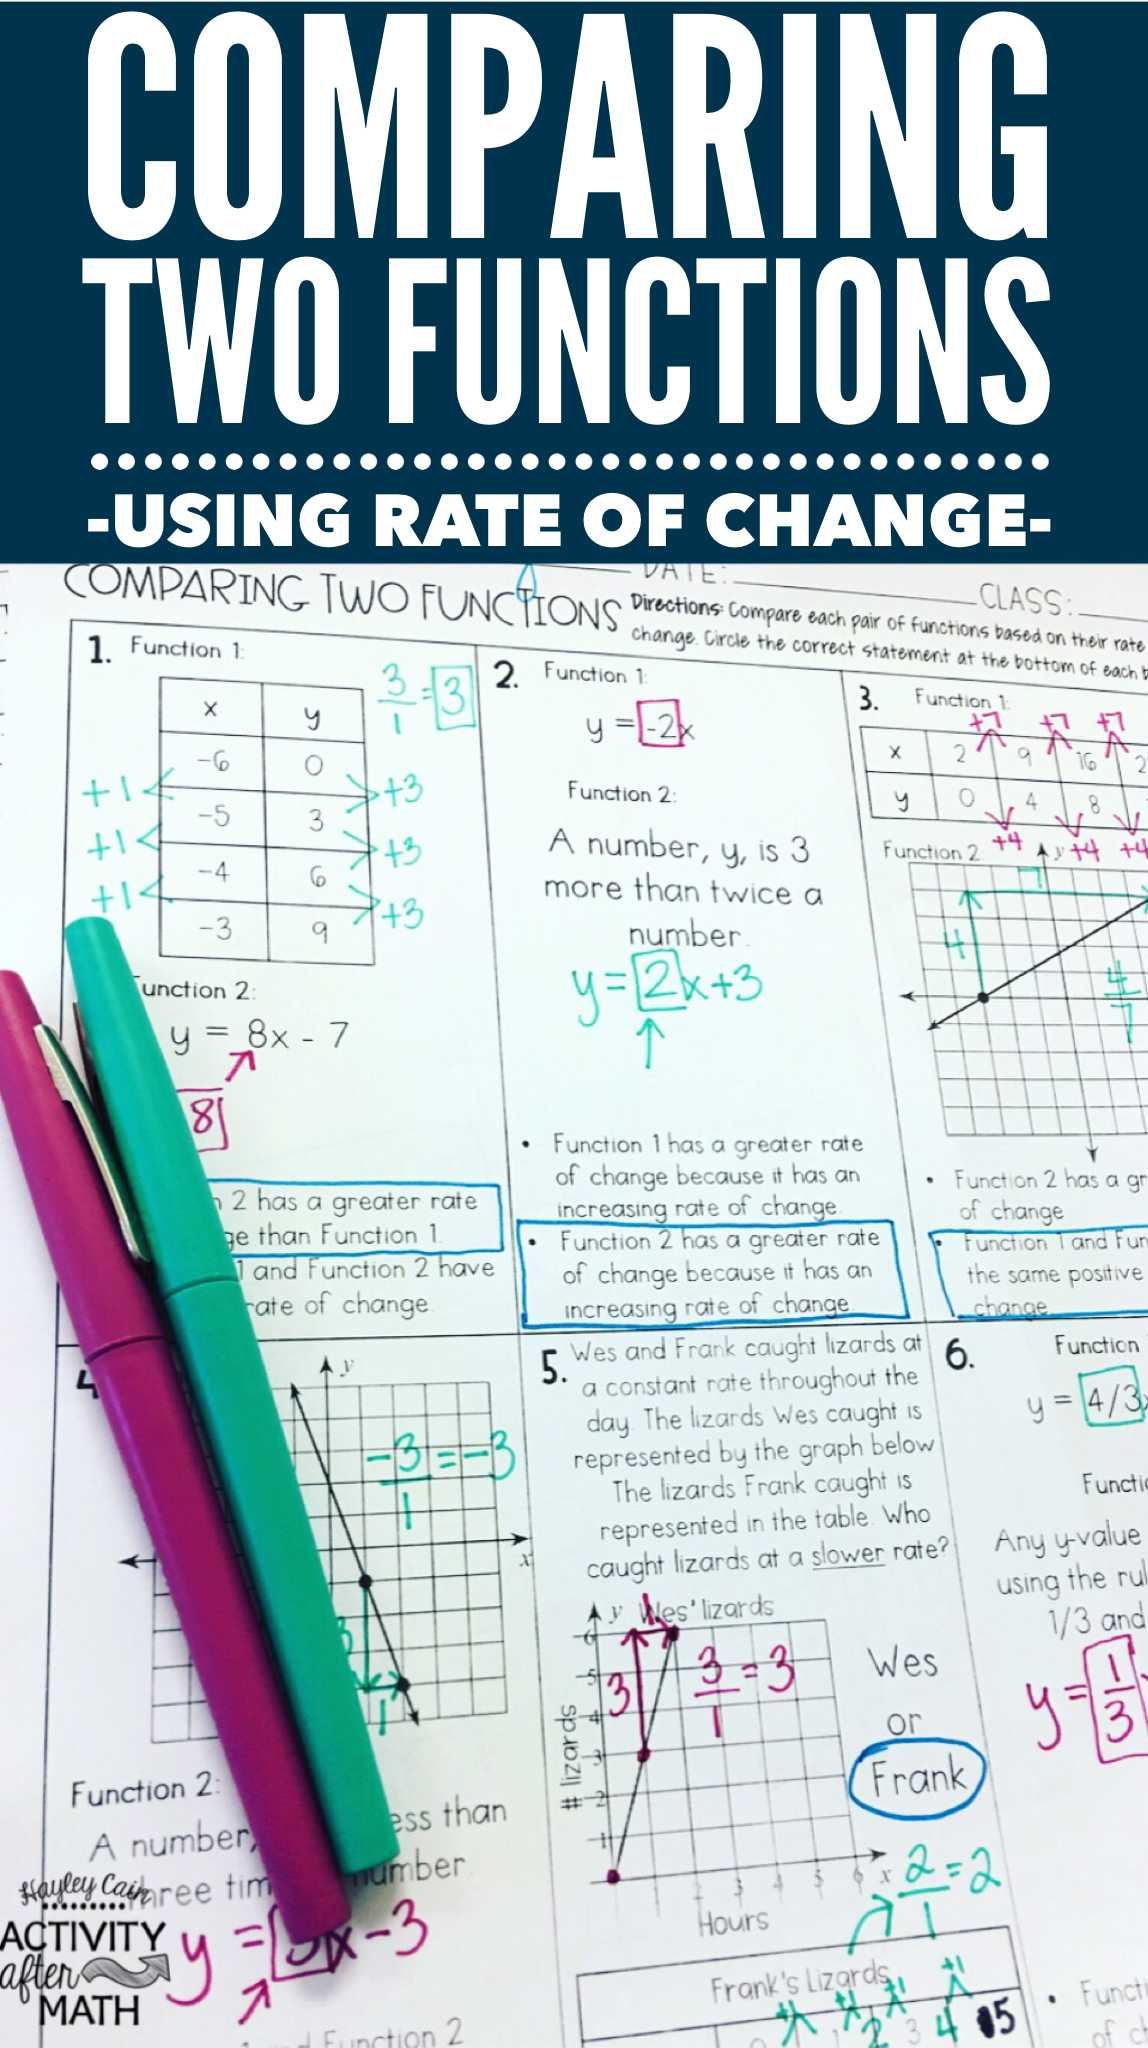 Worksheet Factoring Trinomials Answers Key Also Paring Two Functions by Rate Of Change Practice Worksheet